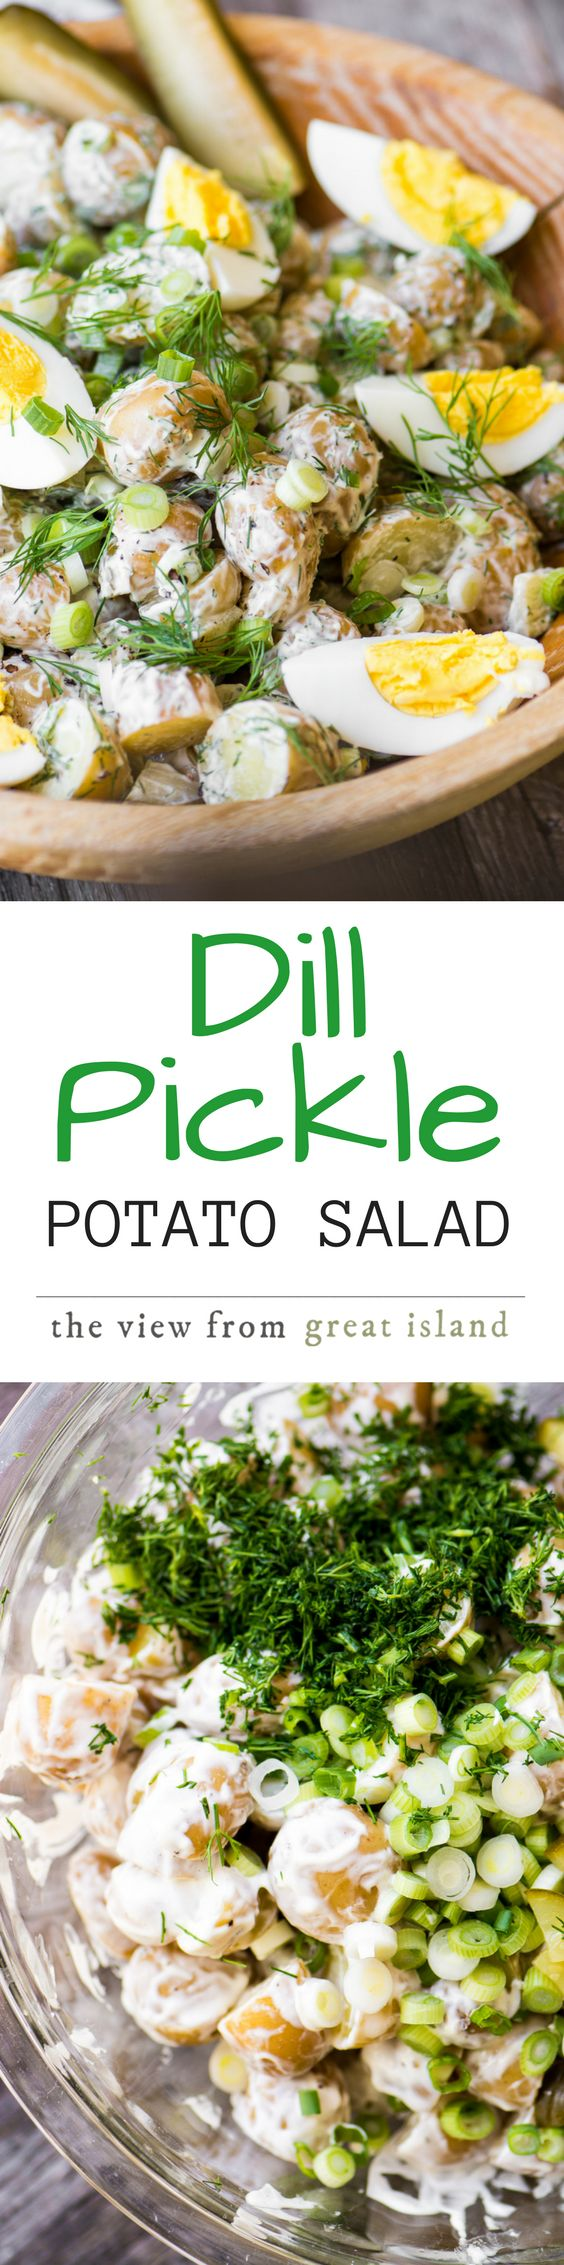 Dill Pickle Potato Salad ~ this creamy potato salad packed with pickles will become your favorite summer side, perfect for barbecues, picnics, and potlucks!